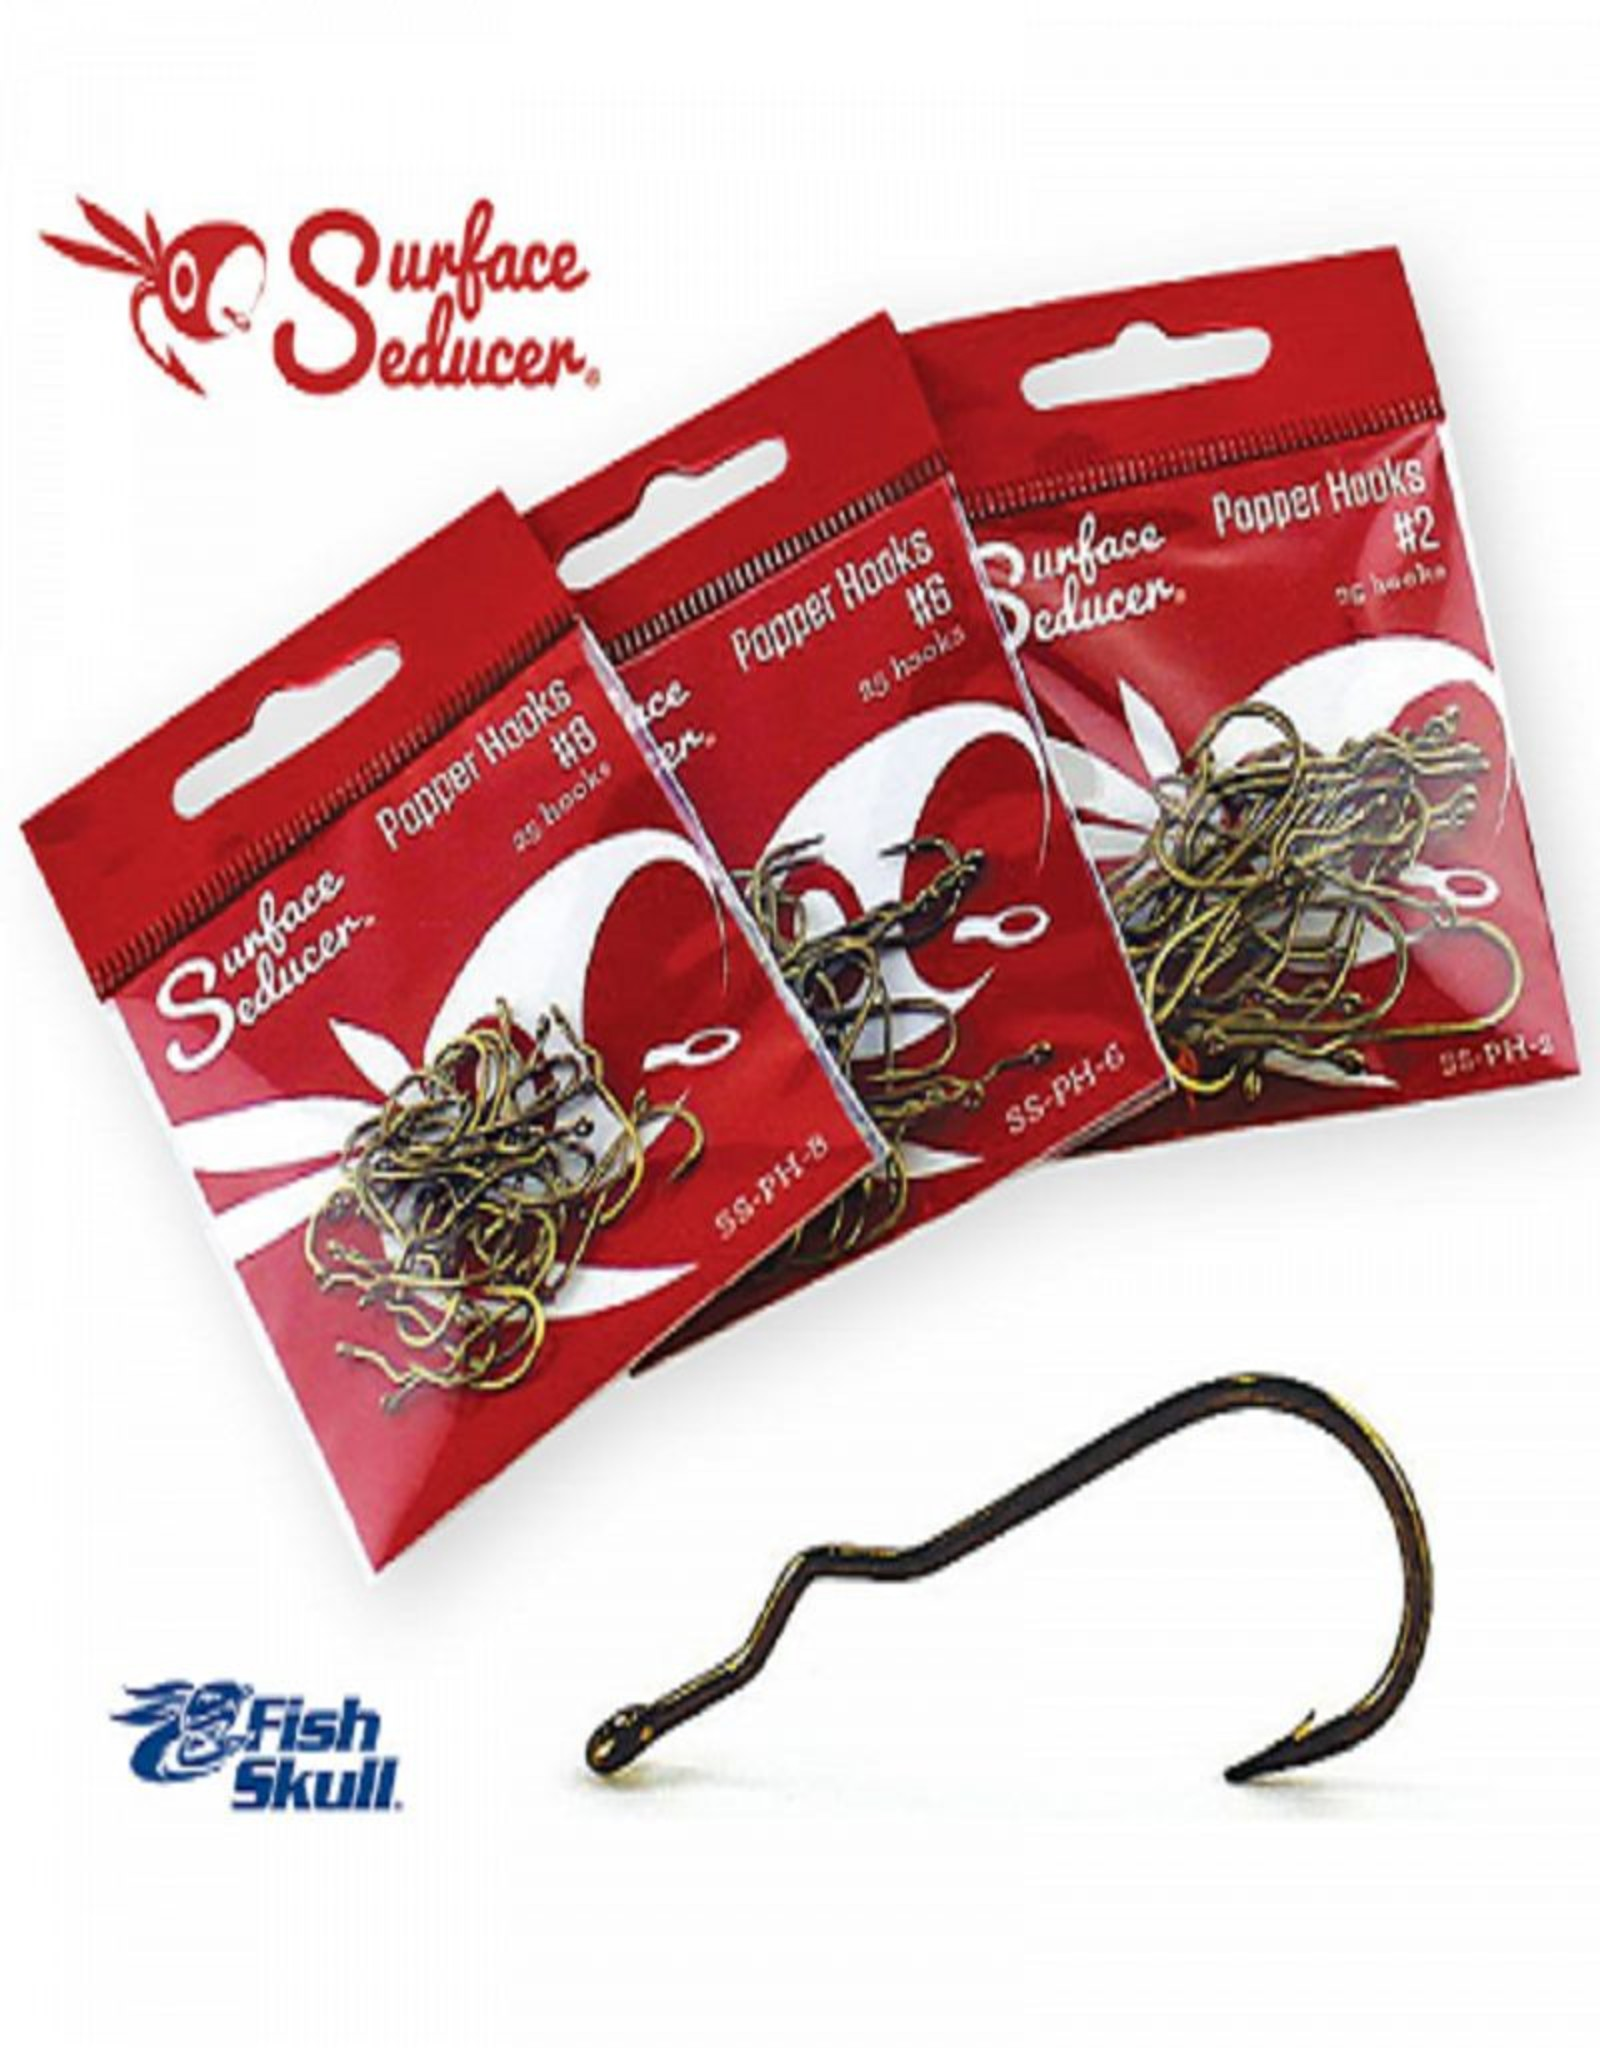 Flymen Fishing Co Flymen Fishing Company Surface Seducer Popper Hooks